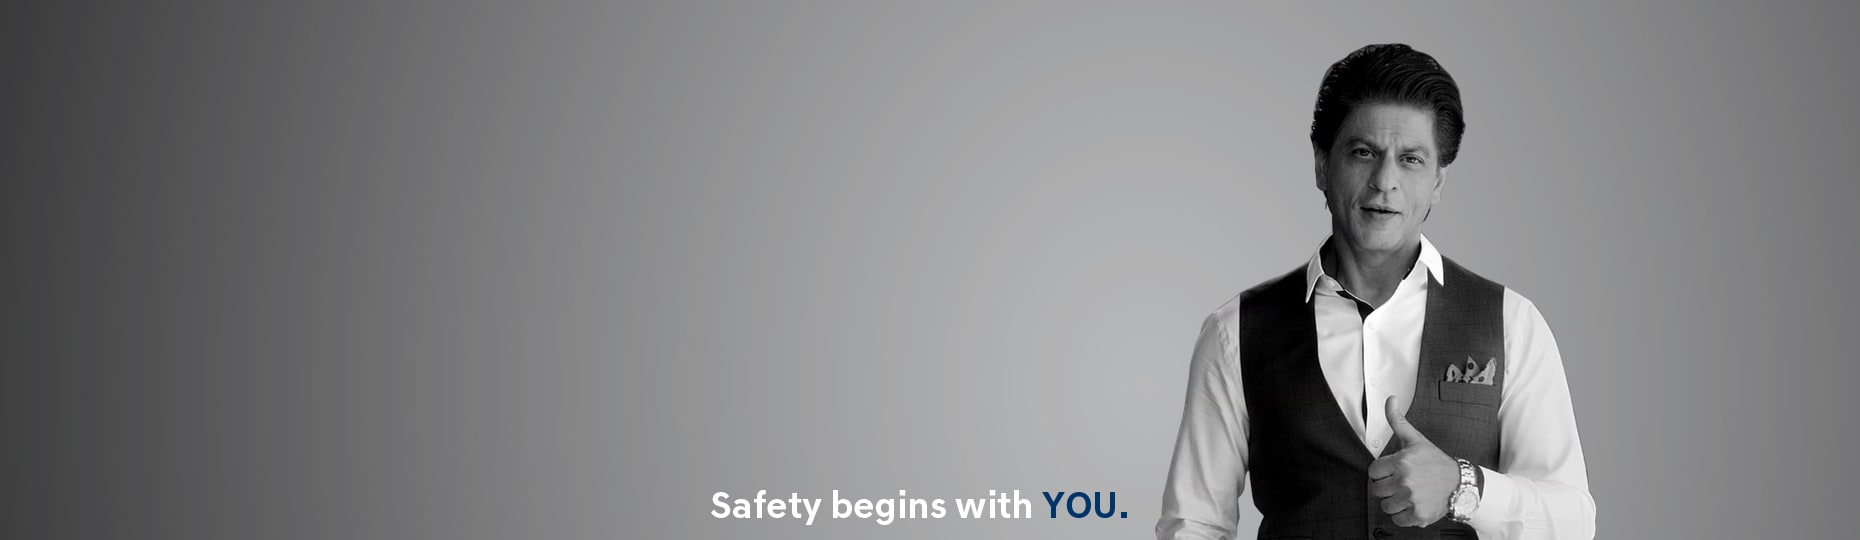 Road safety begins with you